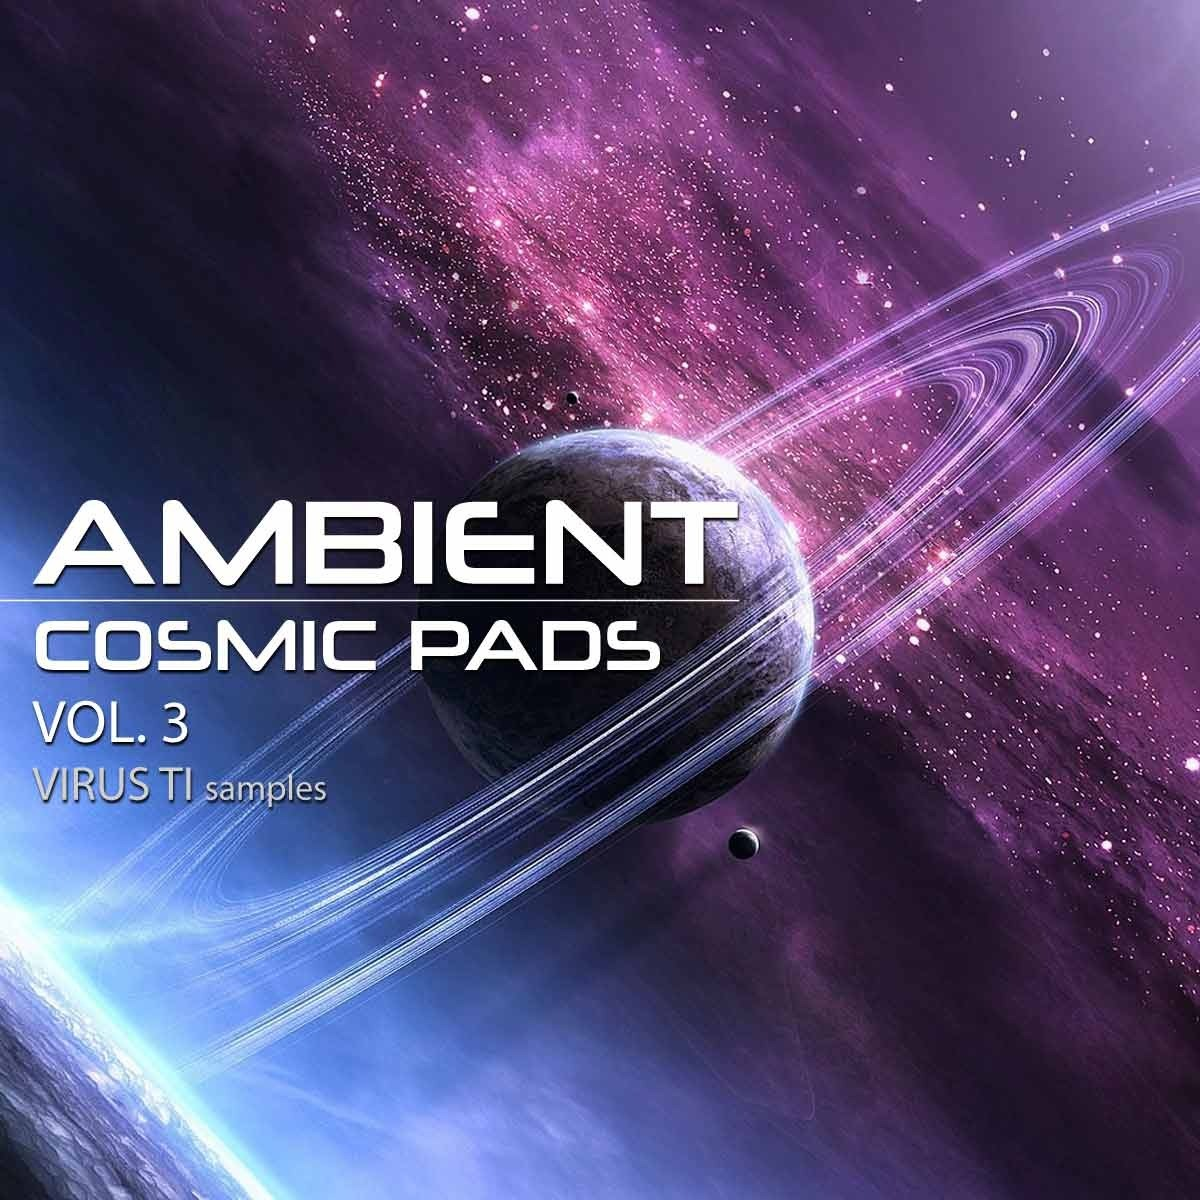 Ambient Cosmic Pads Vol 3